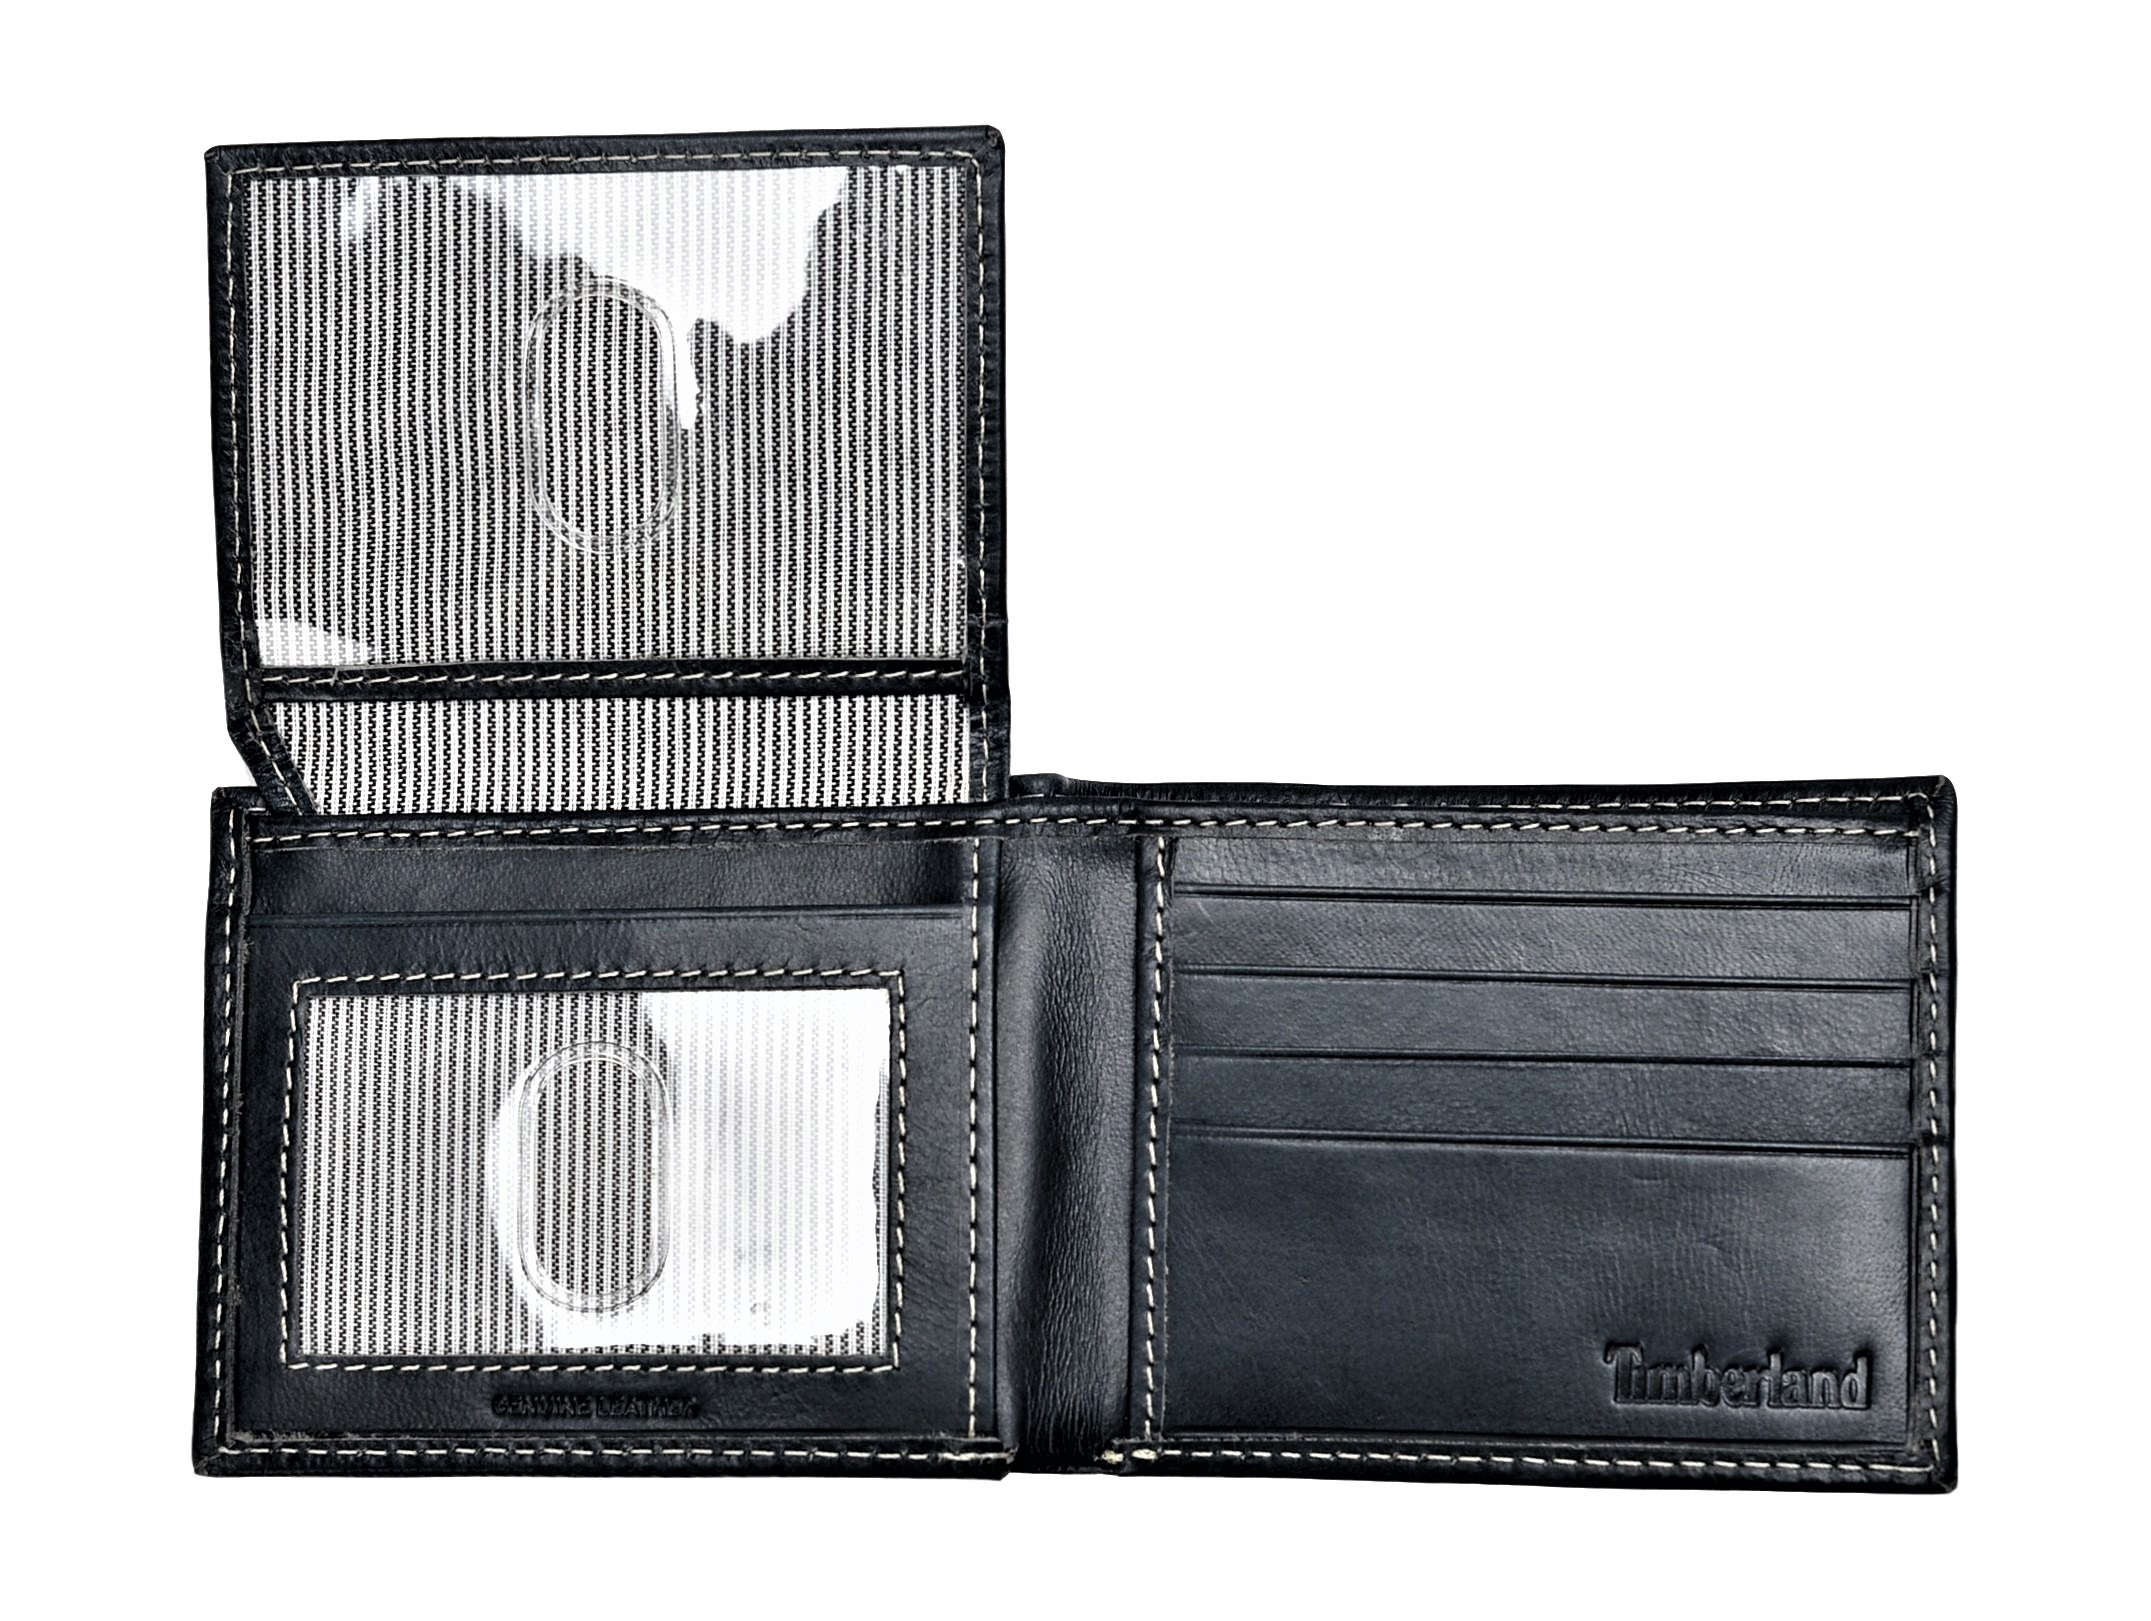 Timberland-Men-039-s-Genuine-Smooth-Leather-Cloudy-Passcase-Wallet thumbnail 22